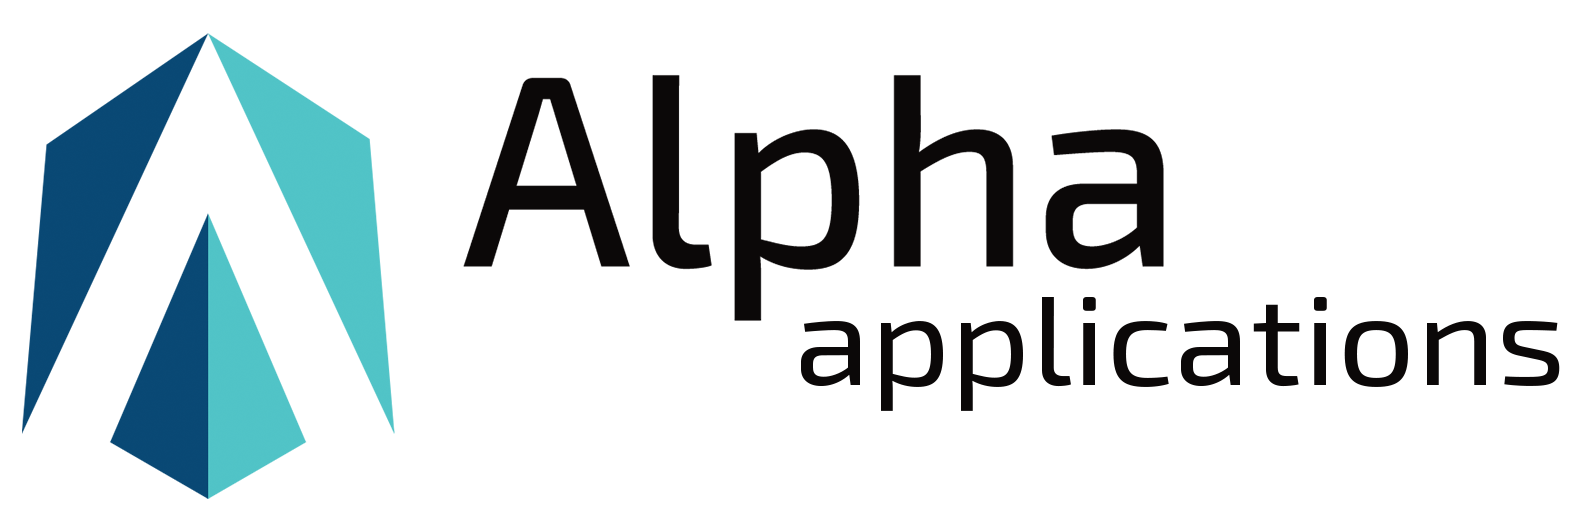 Alpha Applications logo